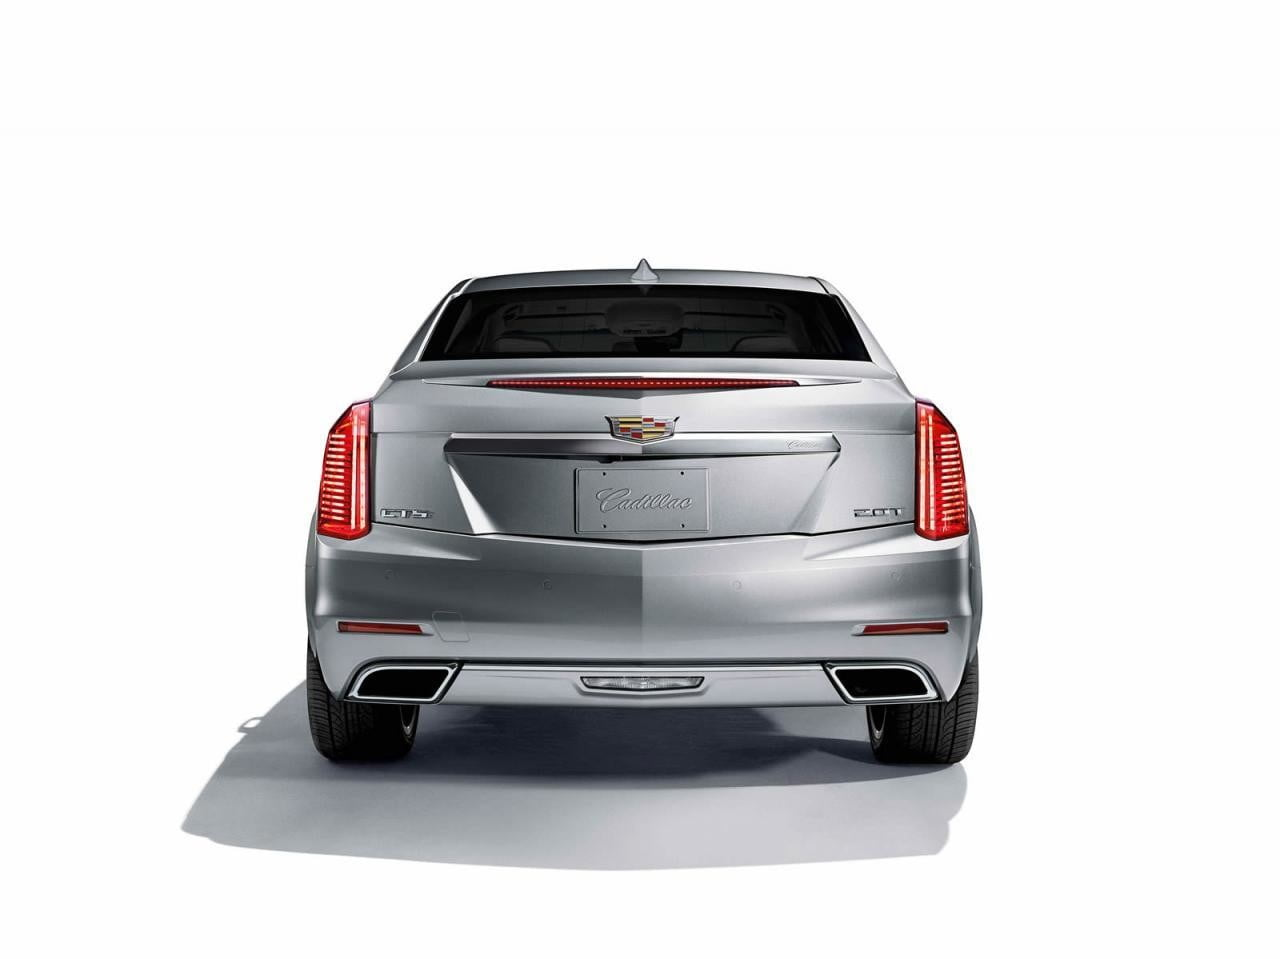 cadillac cts ditches wreath gains loads tech 2015